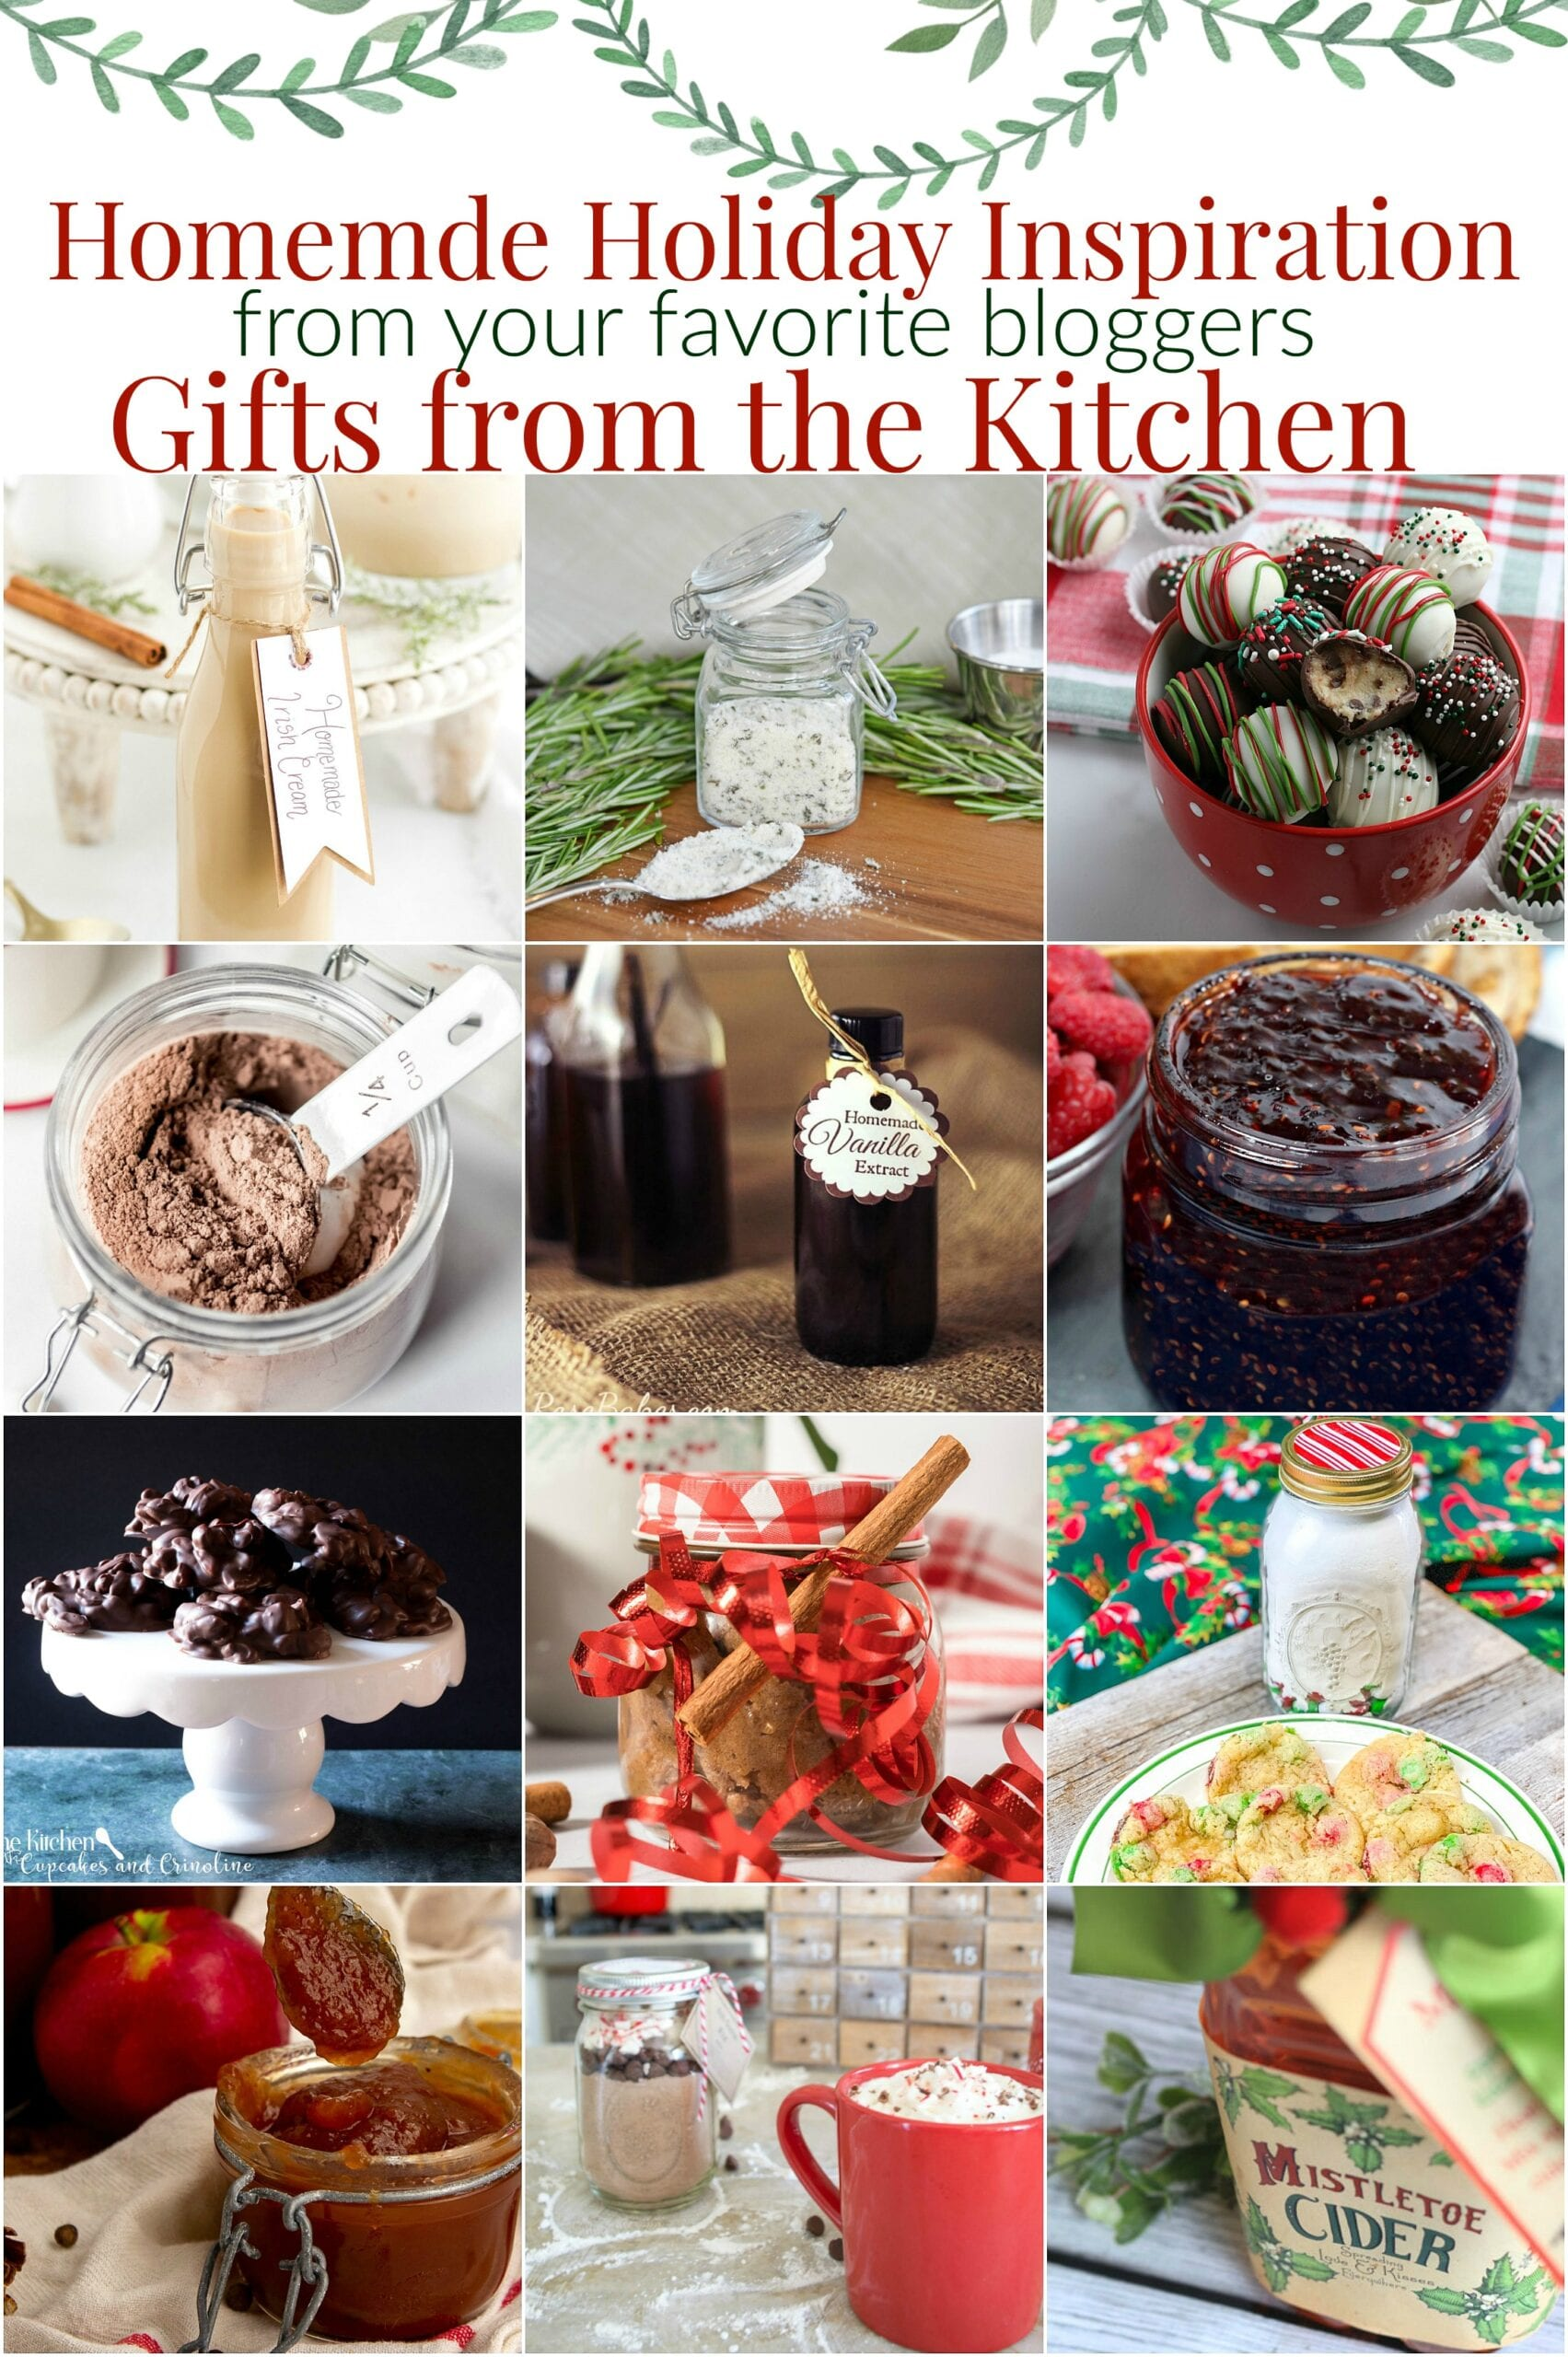 Collage of homemade holiday gifts with text overlay.